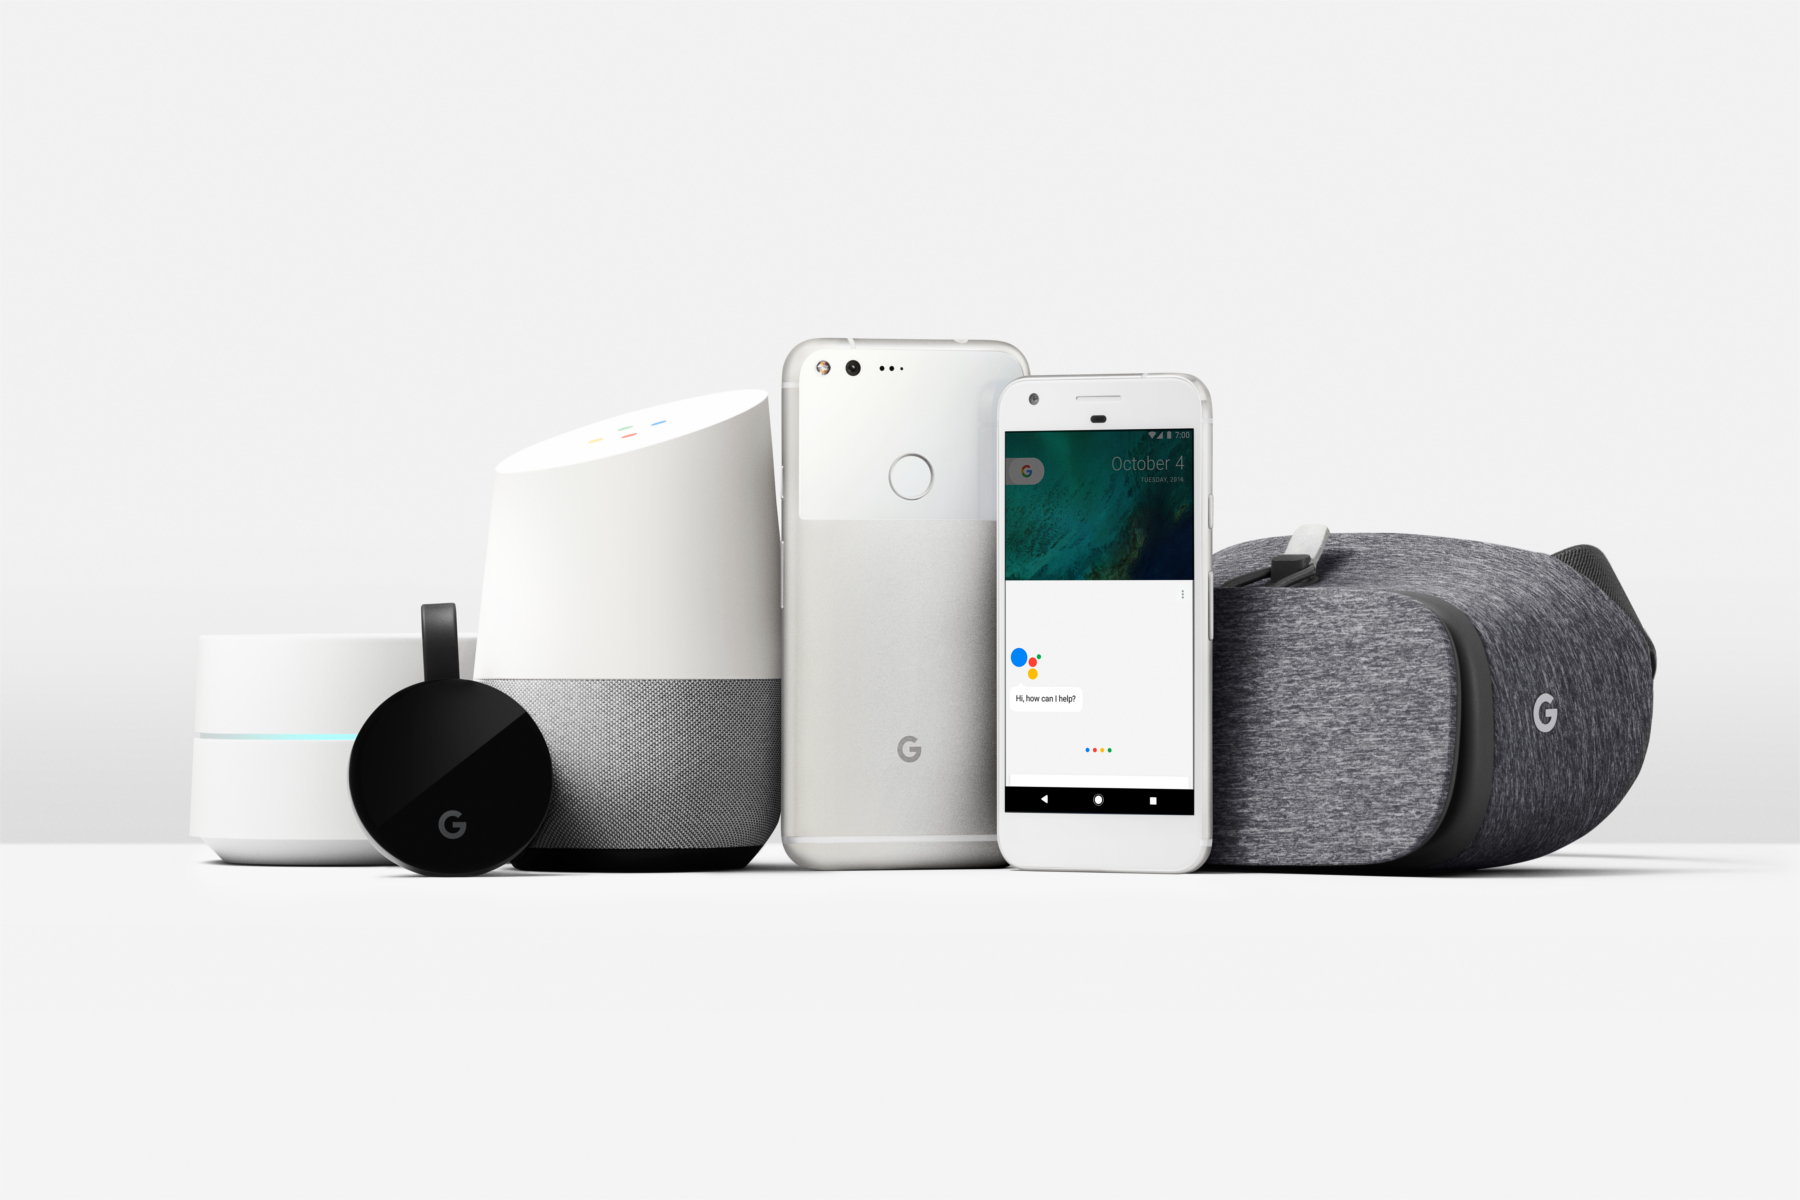 A collection of new Google products on a white background.